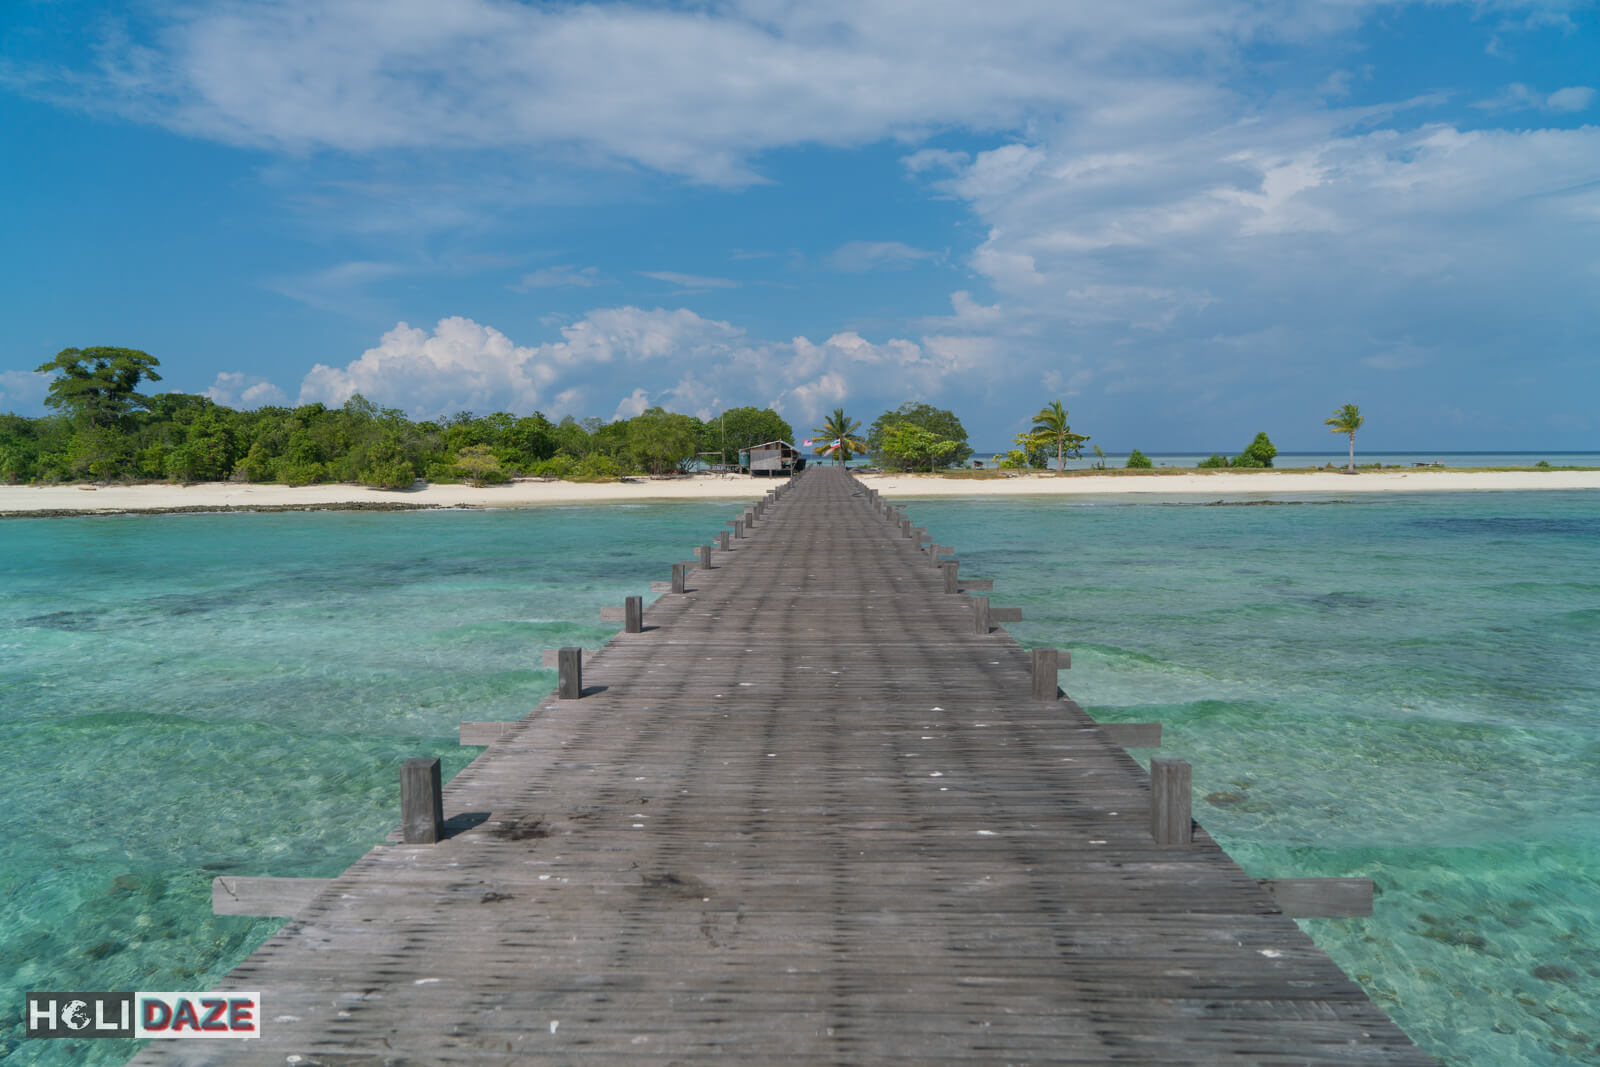 The road to paradise is paved with wood, not gold. Welcome to Timba Timba Island off the coast of Semporna, Sabah.